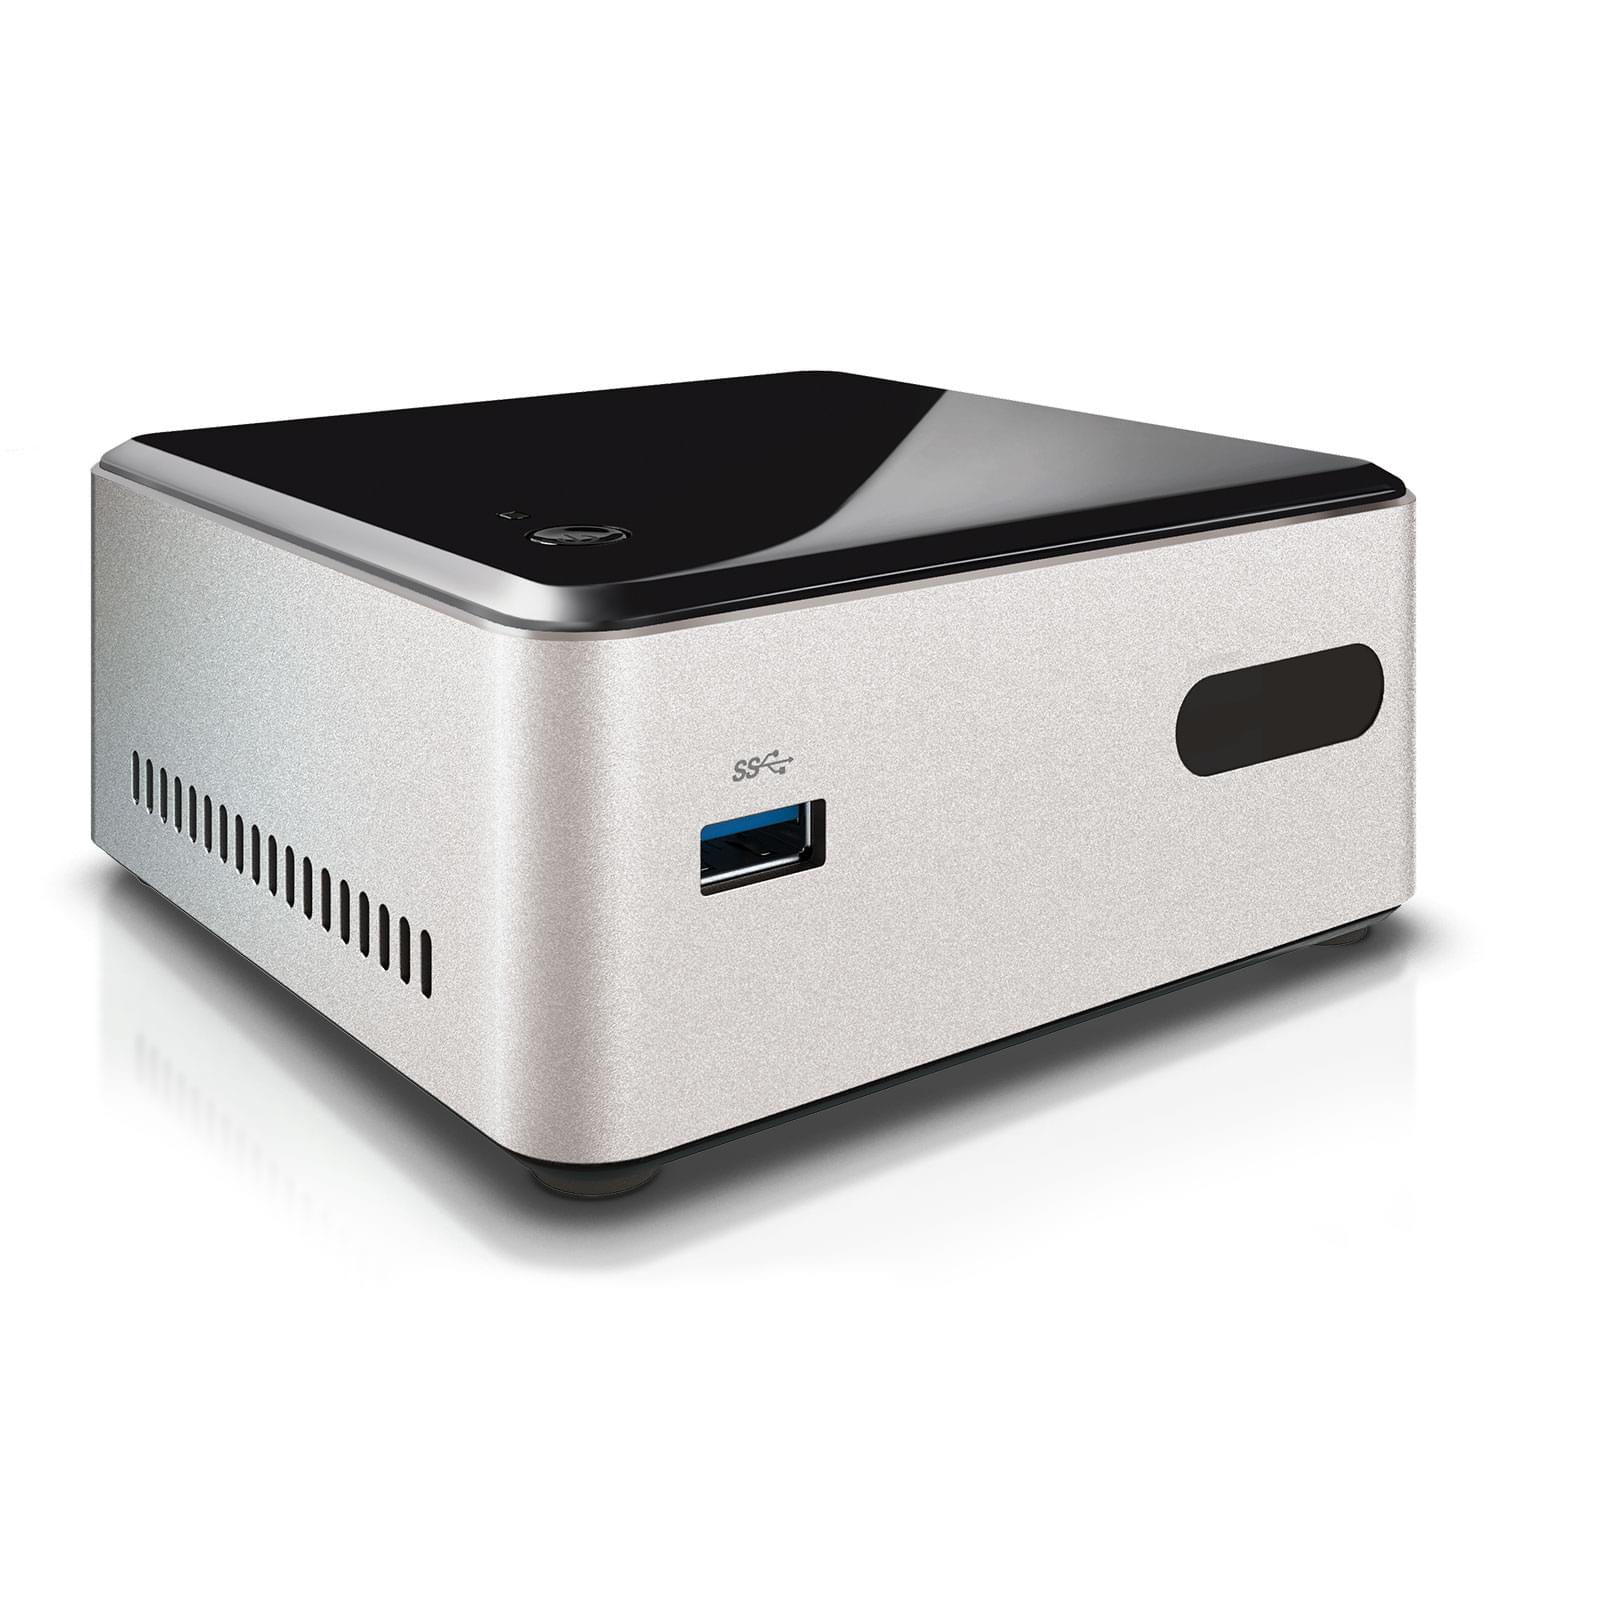 Intel NUC DN2820FYKH - Barebone et Mini-PC Intel - Cybertek.fr - 0